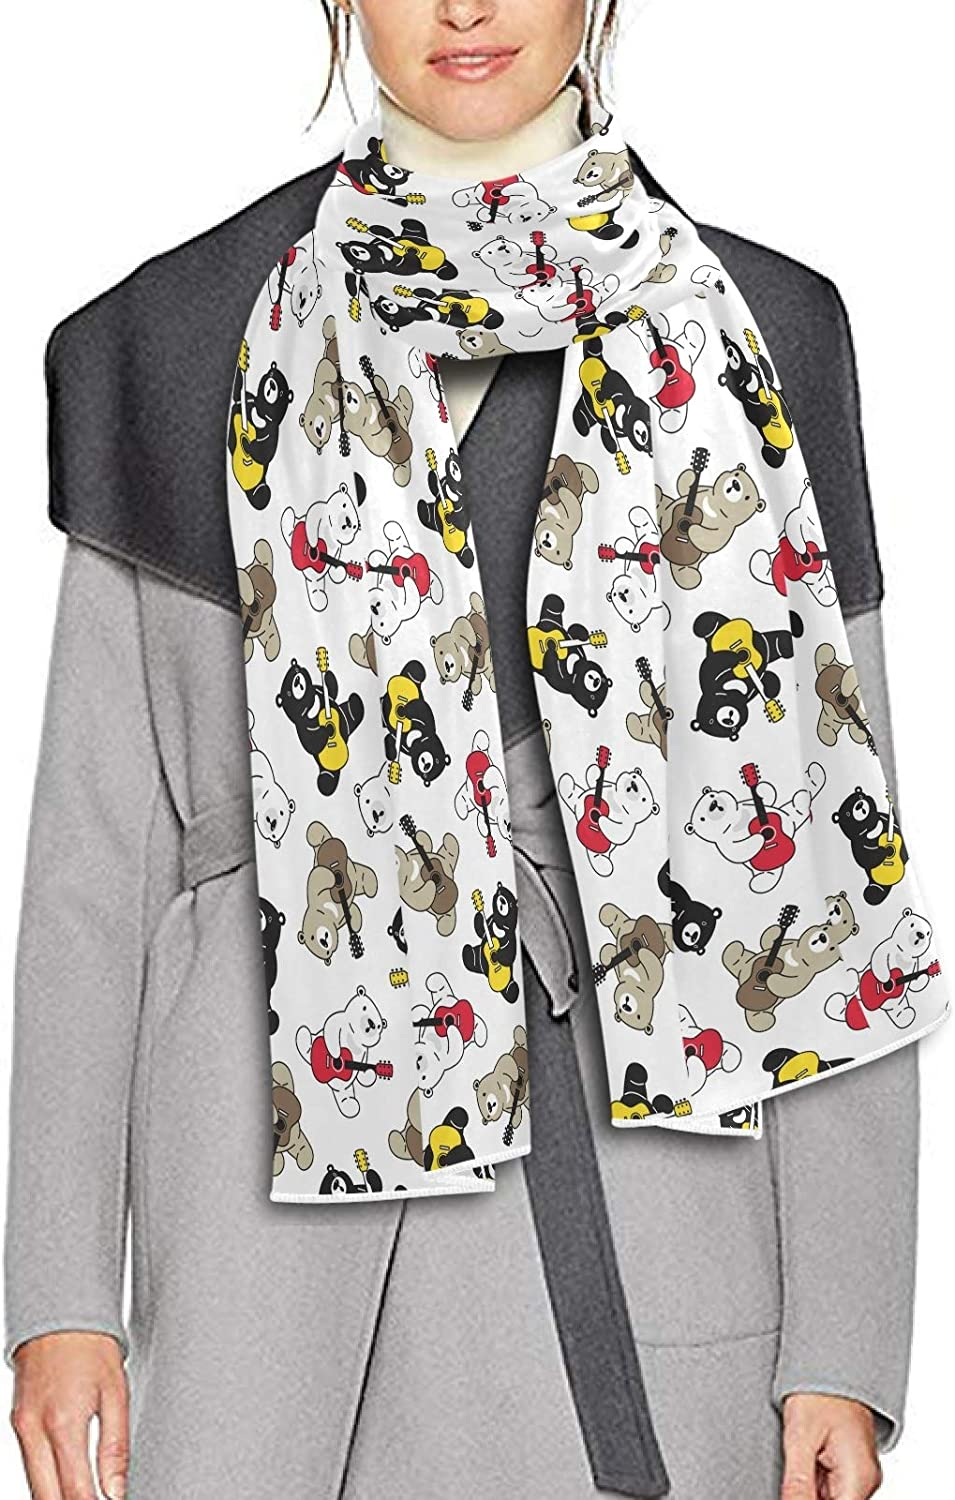 Scarf for Women and Men Polar Bear Guitar Blanket Shawl Scarf wraps Soft Thick Winter Large Scarves Lightweight